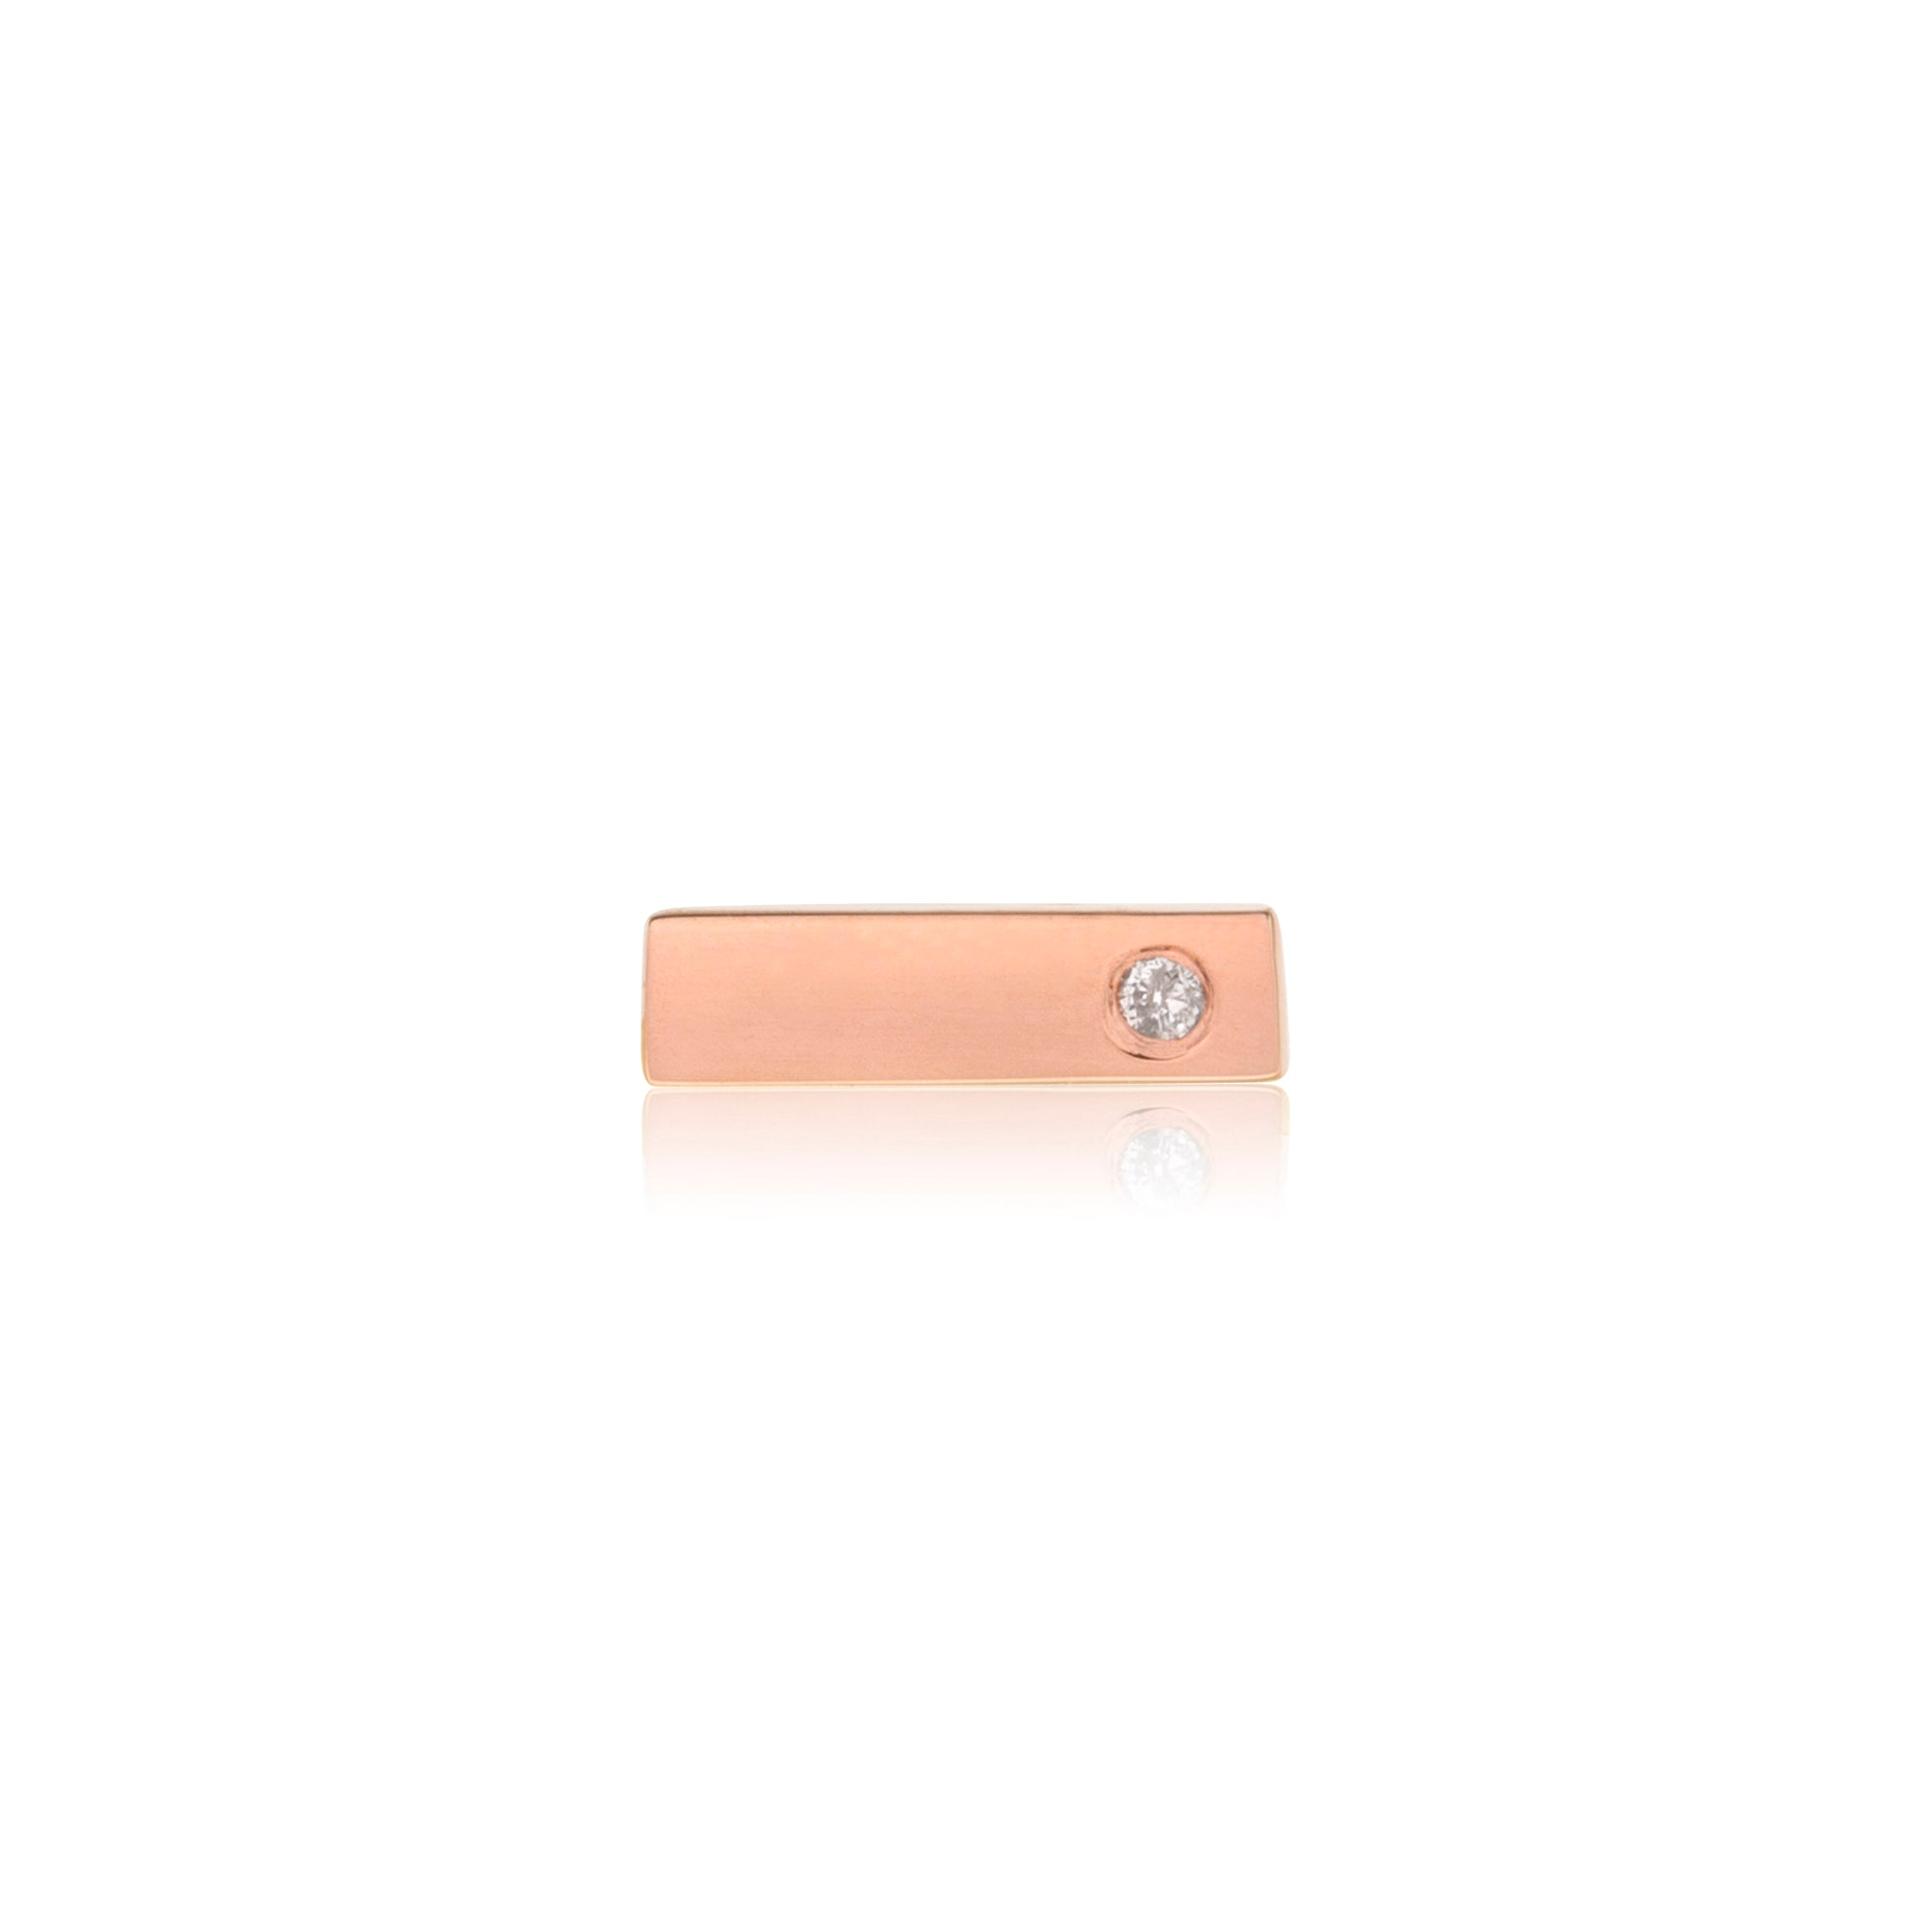 Rose Gold Medium Bar Stud Earring with Diamond